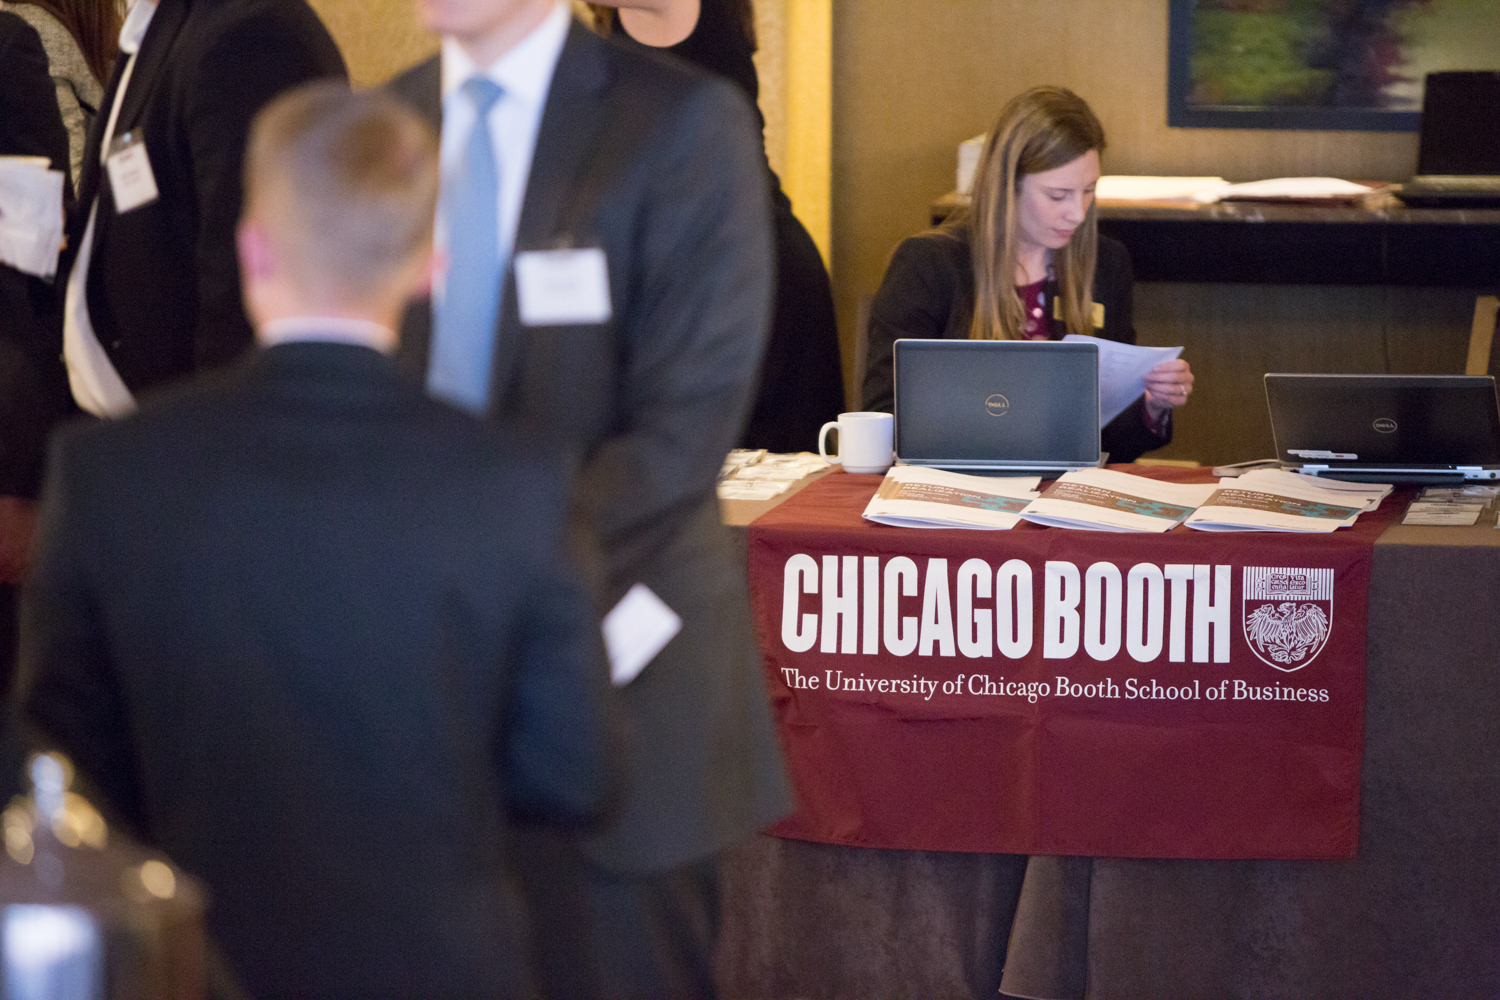 113_333_Chicago Booth - 2015 PE Conference_1500px.jpg